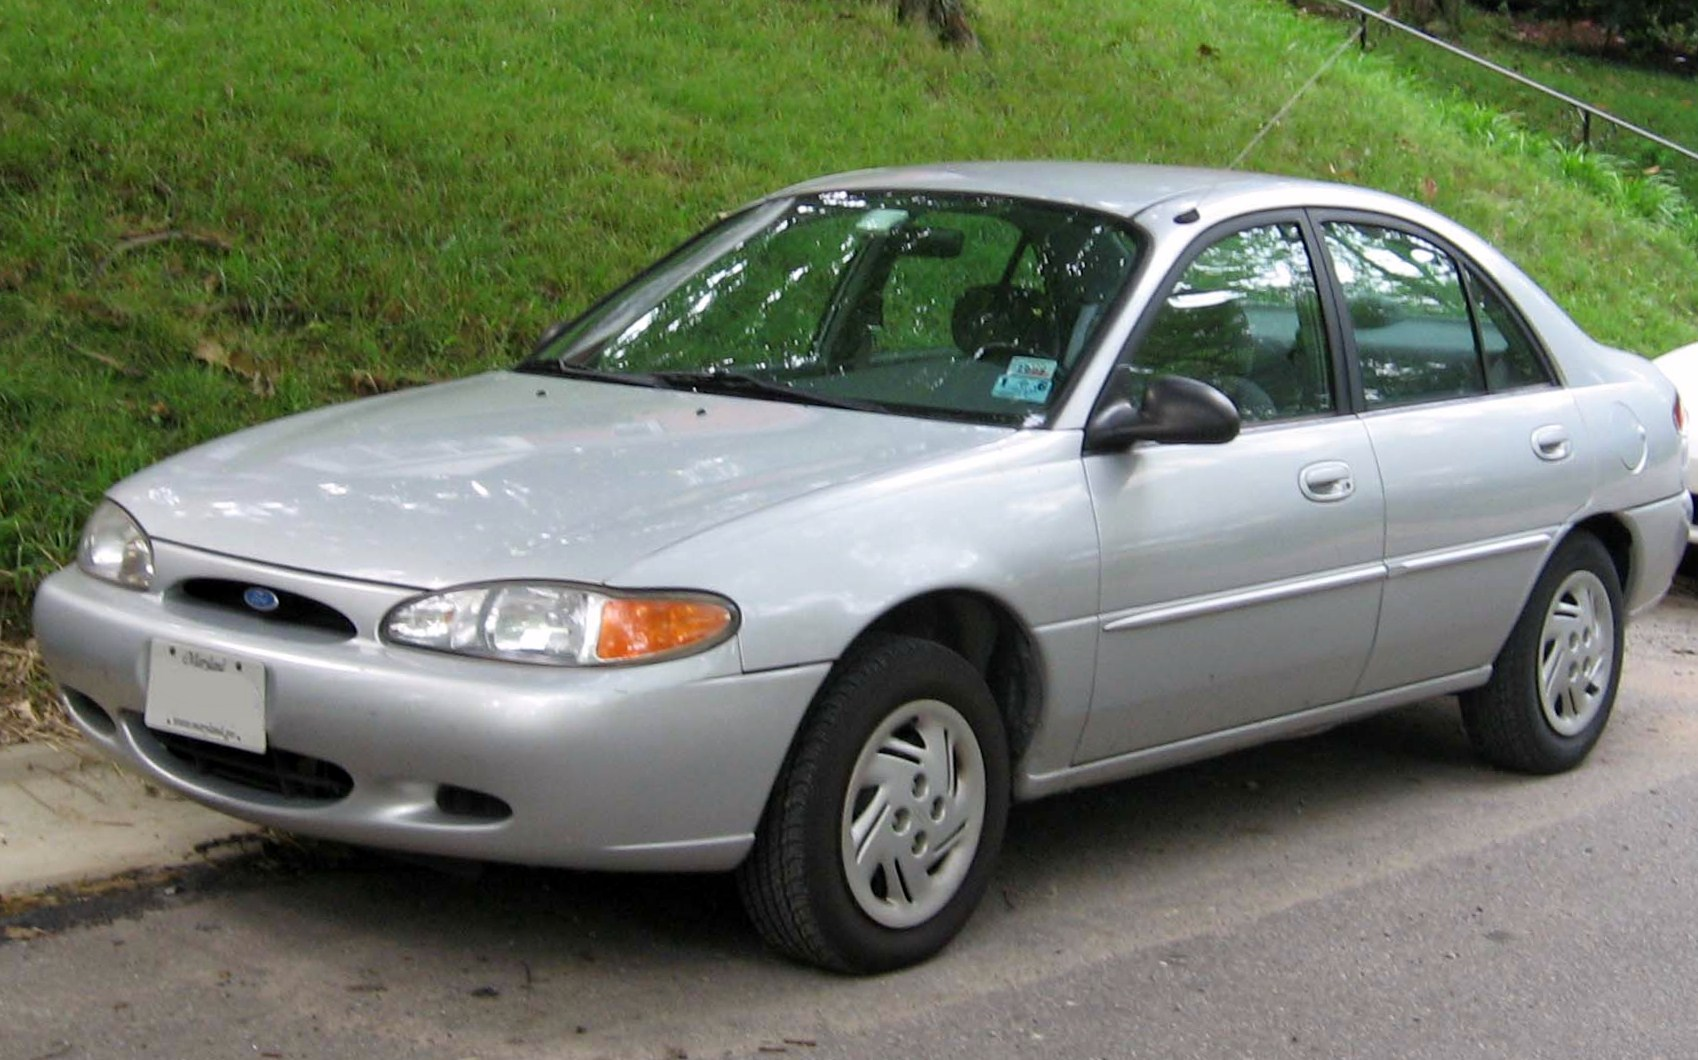 File:97-02 Ford Escort sedan.jpg - Wikimedia Commonsescort